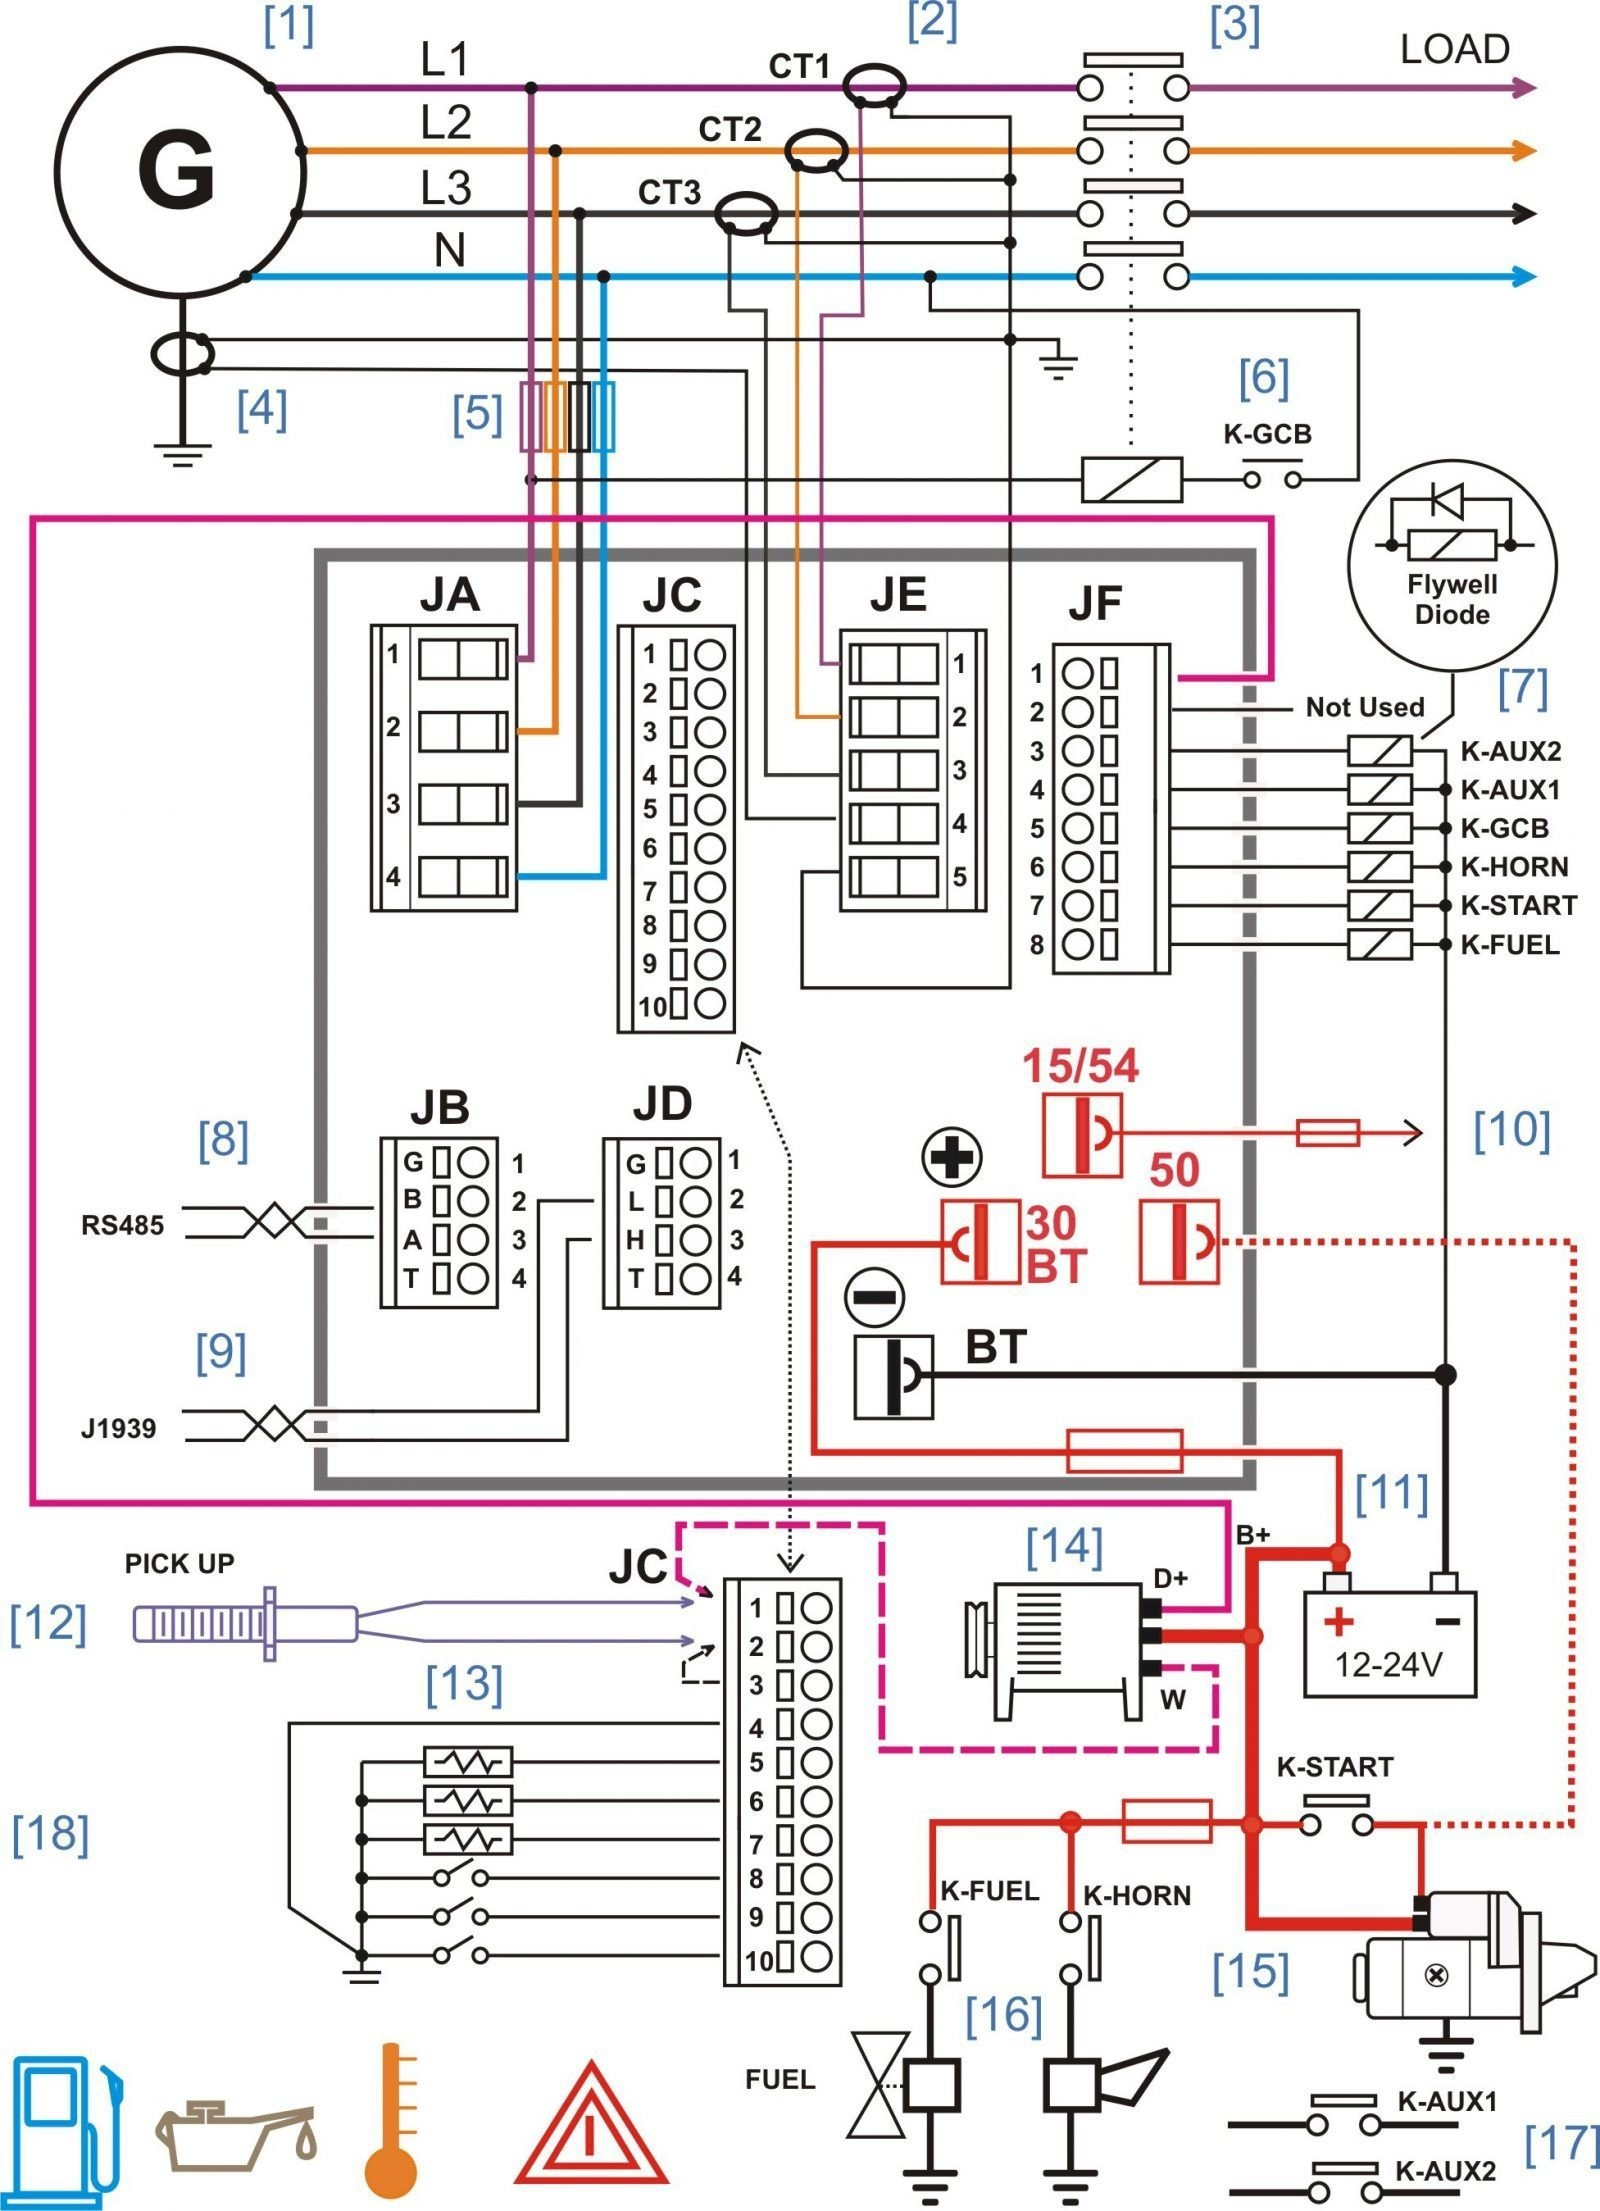 Bmw Car Stereo Wiring Diagram Save Clarion Wiring Diagram for Car Stereo Valid Pioneer Radio Wiring